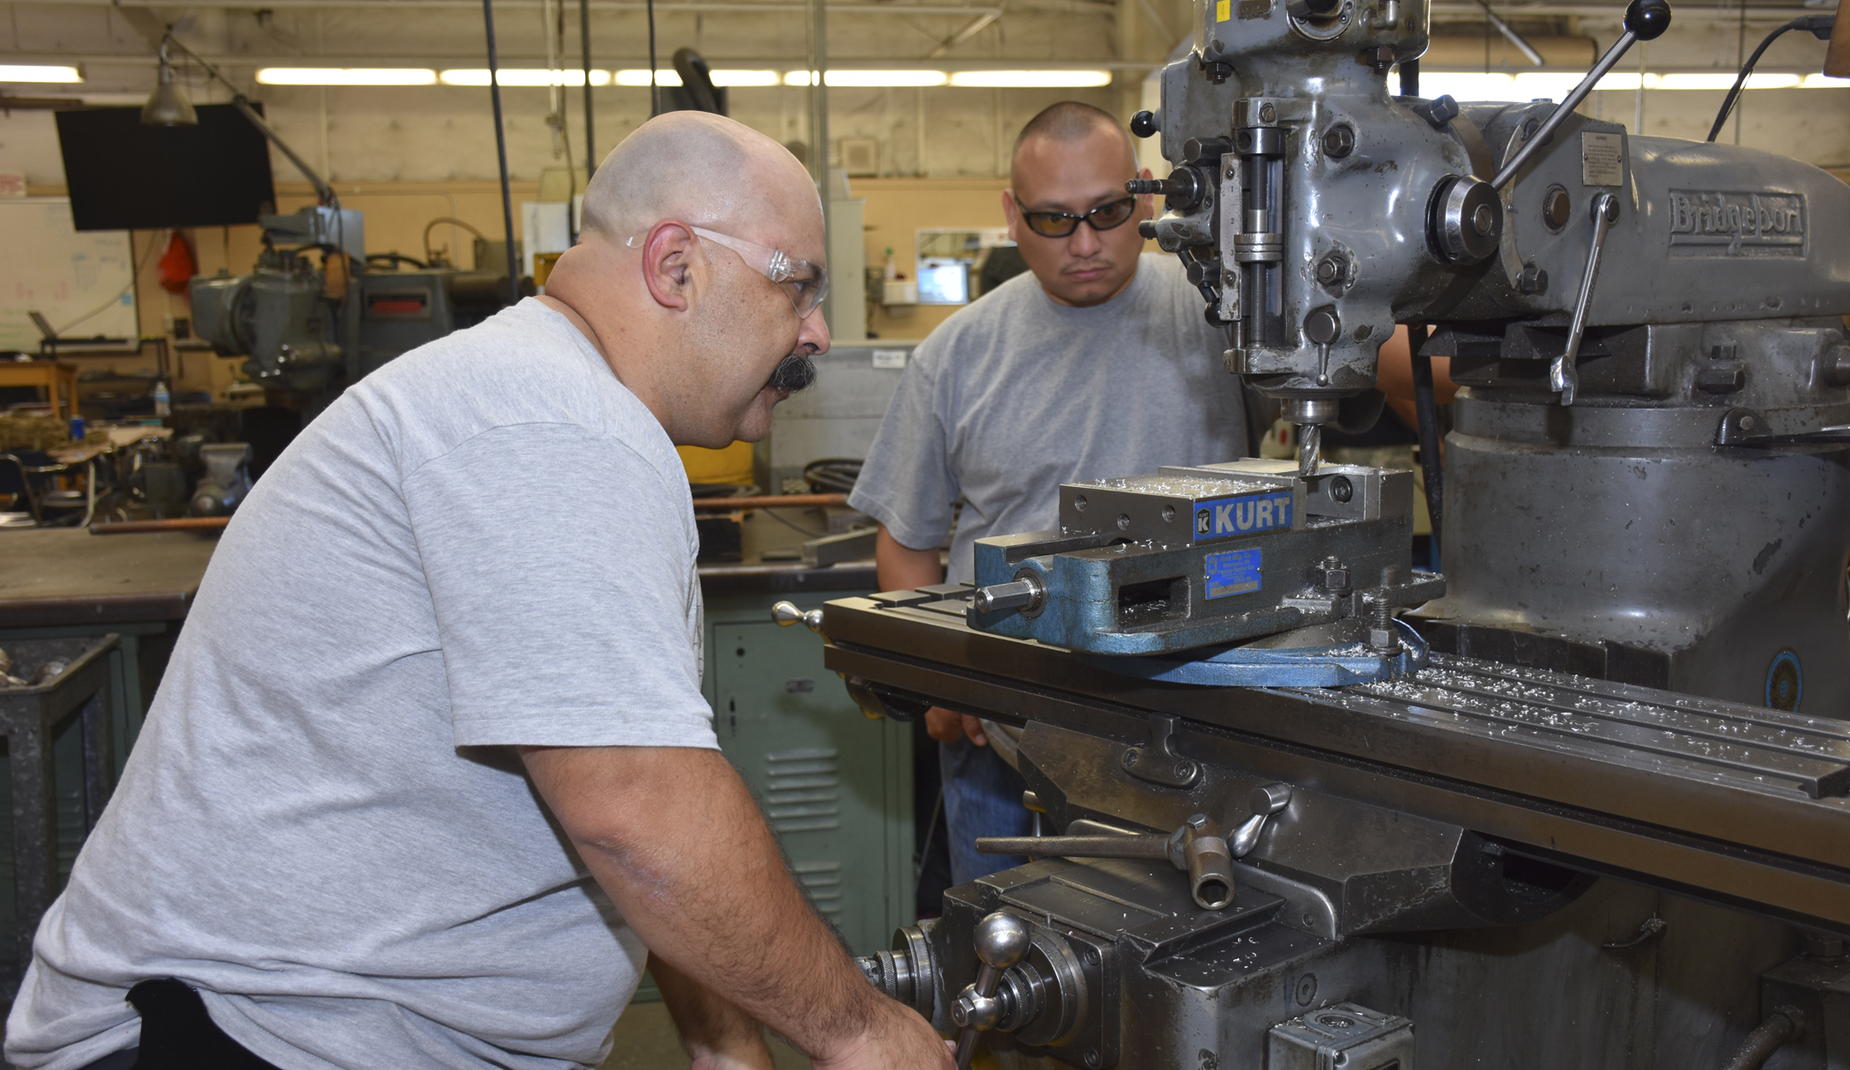 Machinist | Career and Technical Education (CTE)